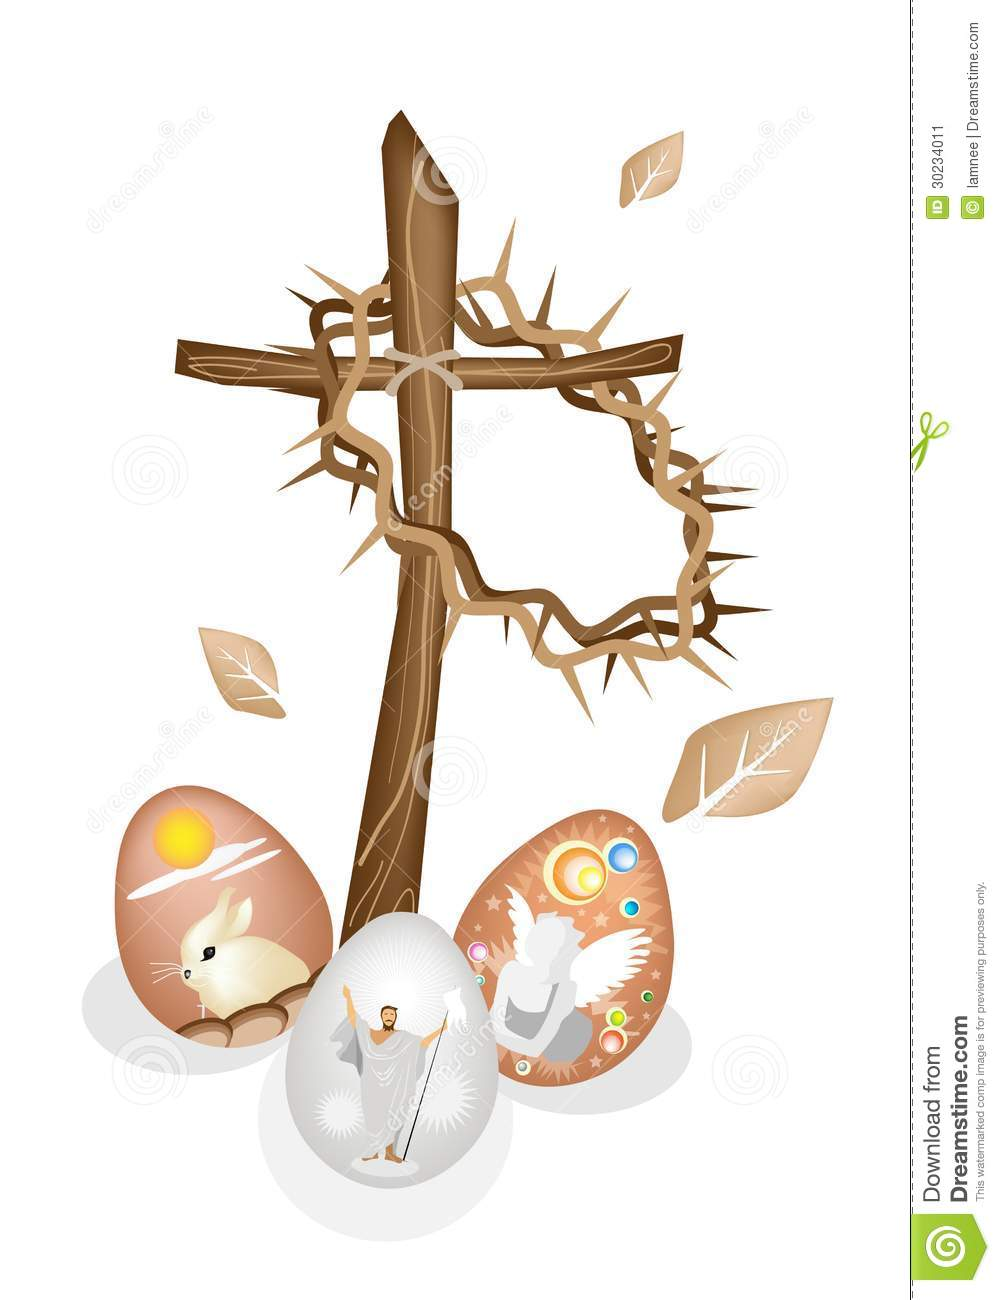 Wooden Cross And A Crown Of Thorns With Easter Egg Stock Image - Image ...